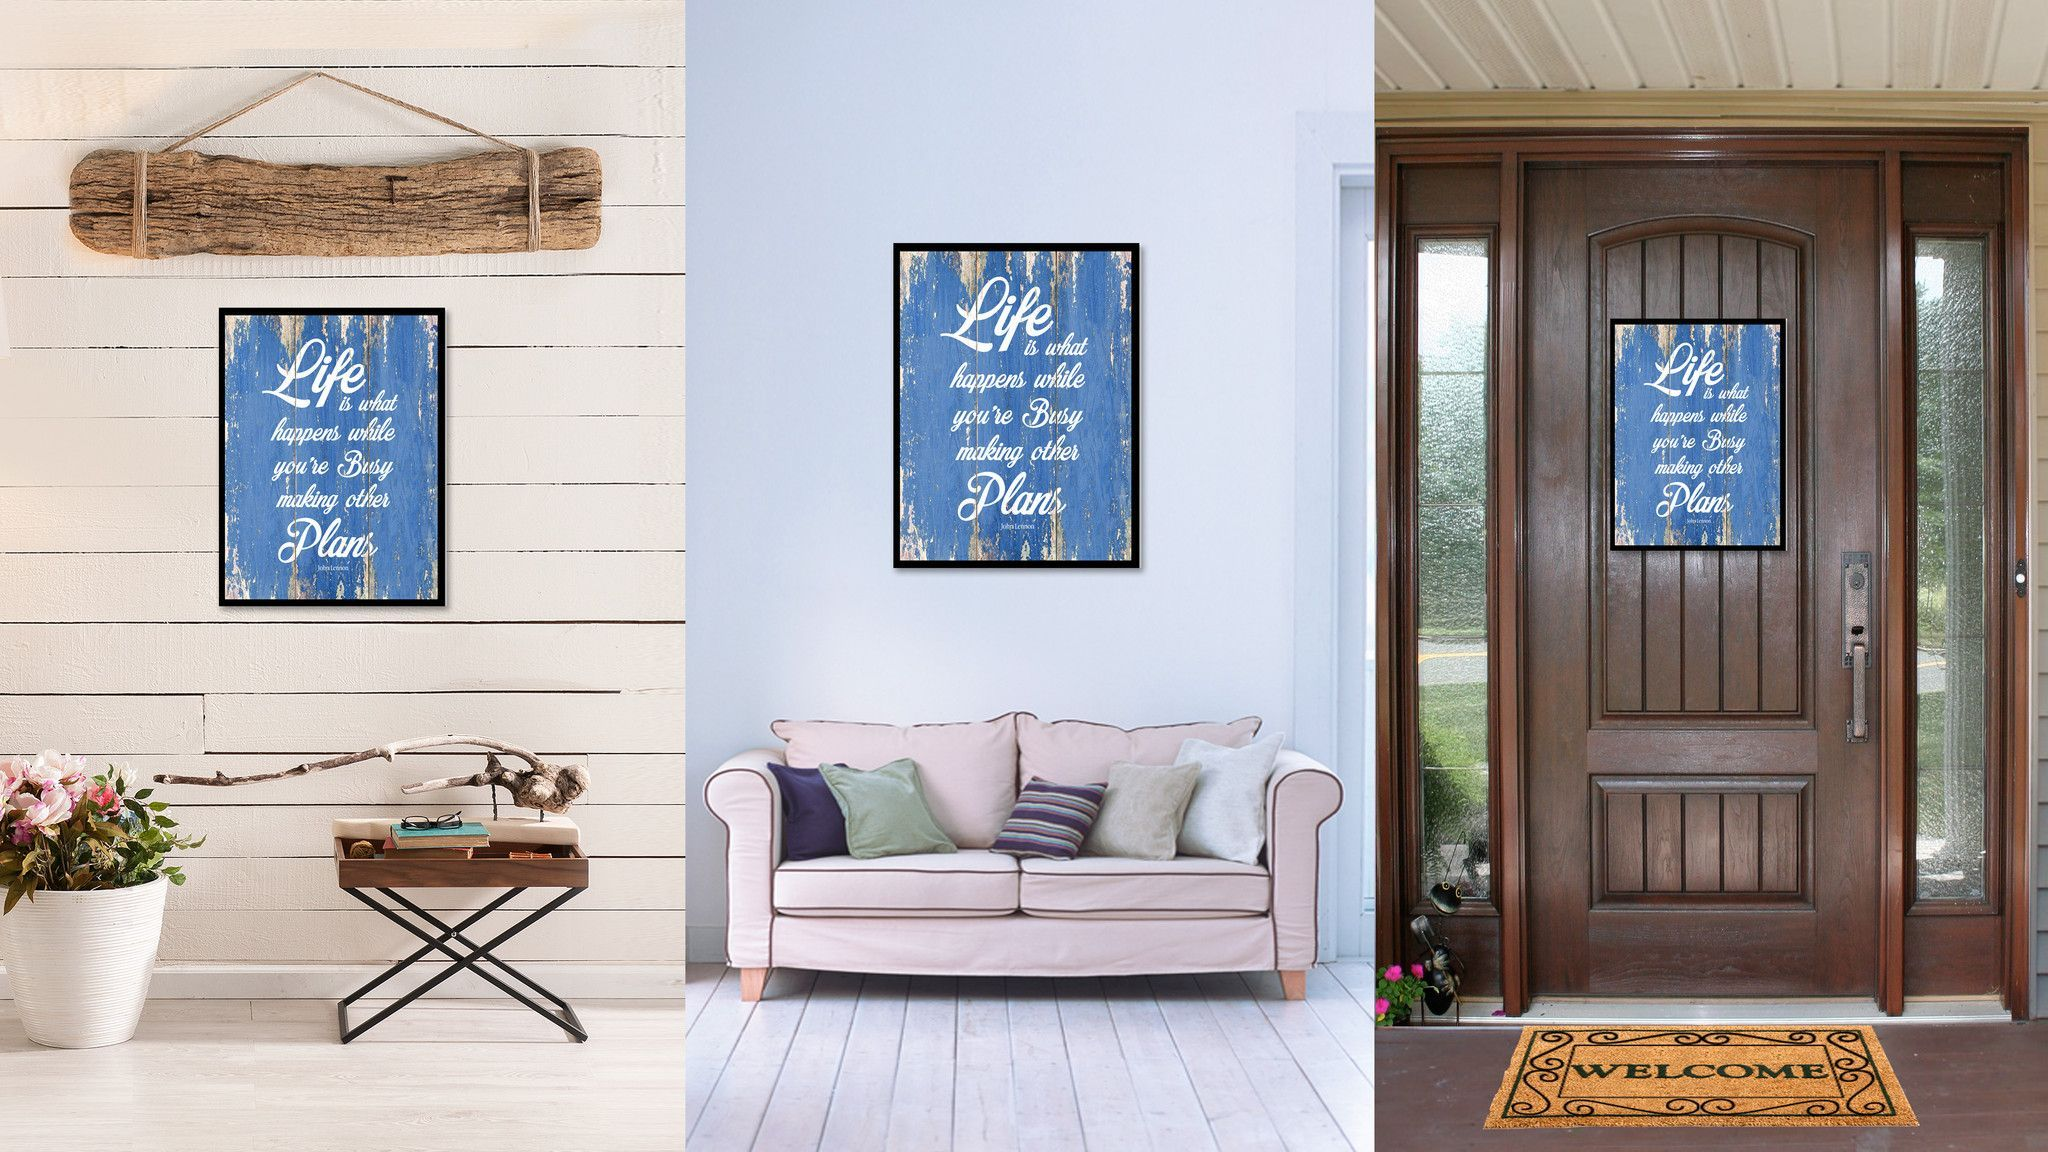 Spotcolorart Is A Shop That Specializes In Home Decor, Art